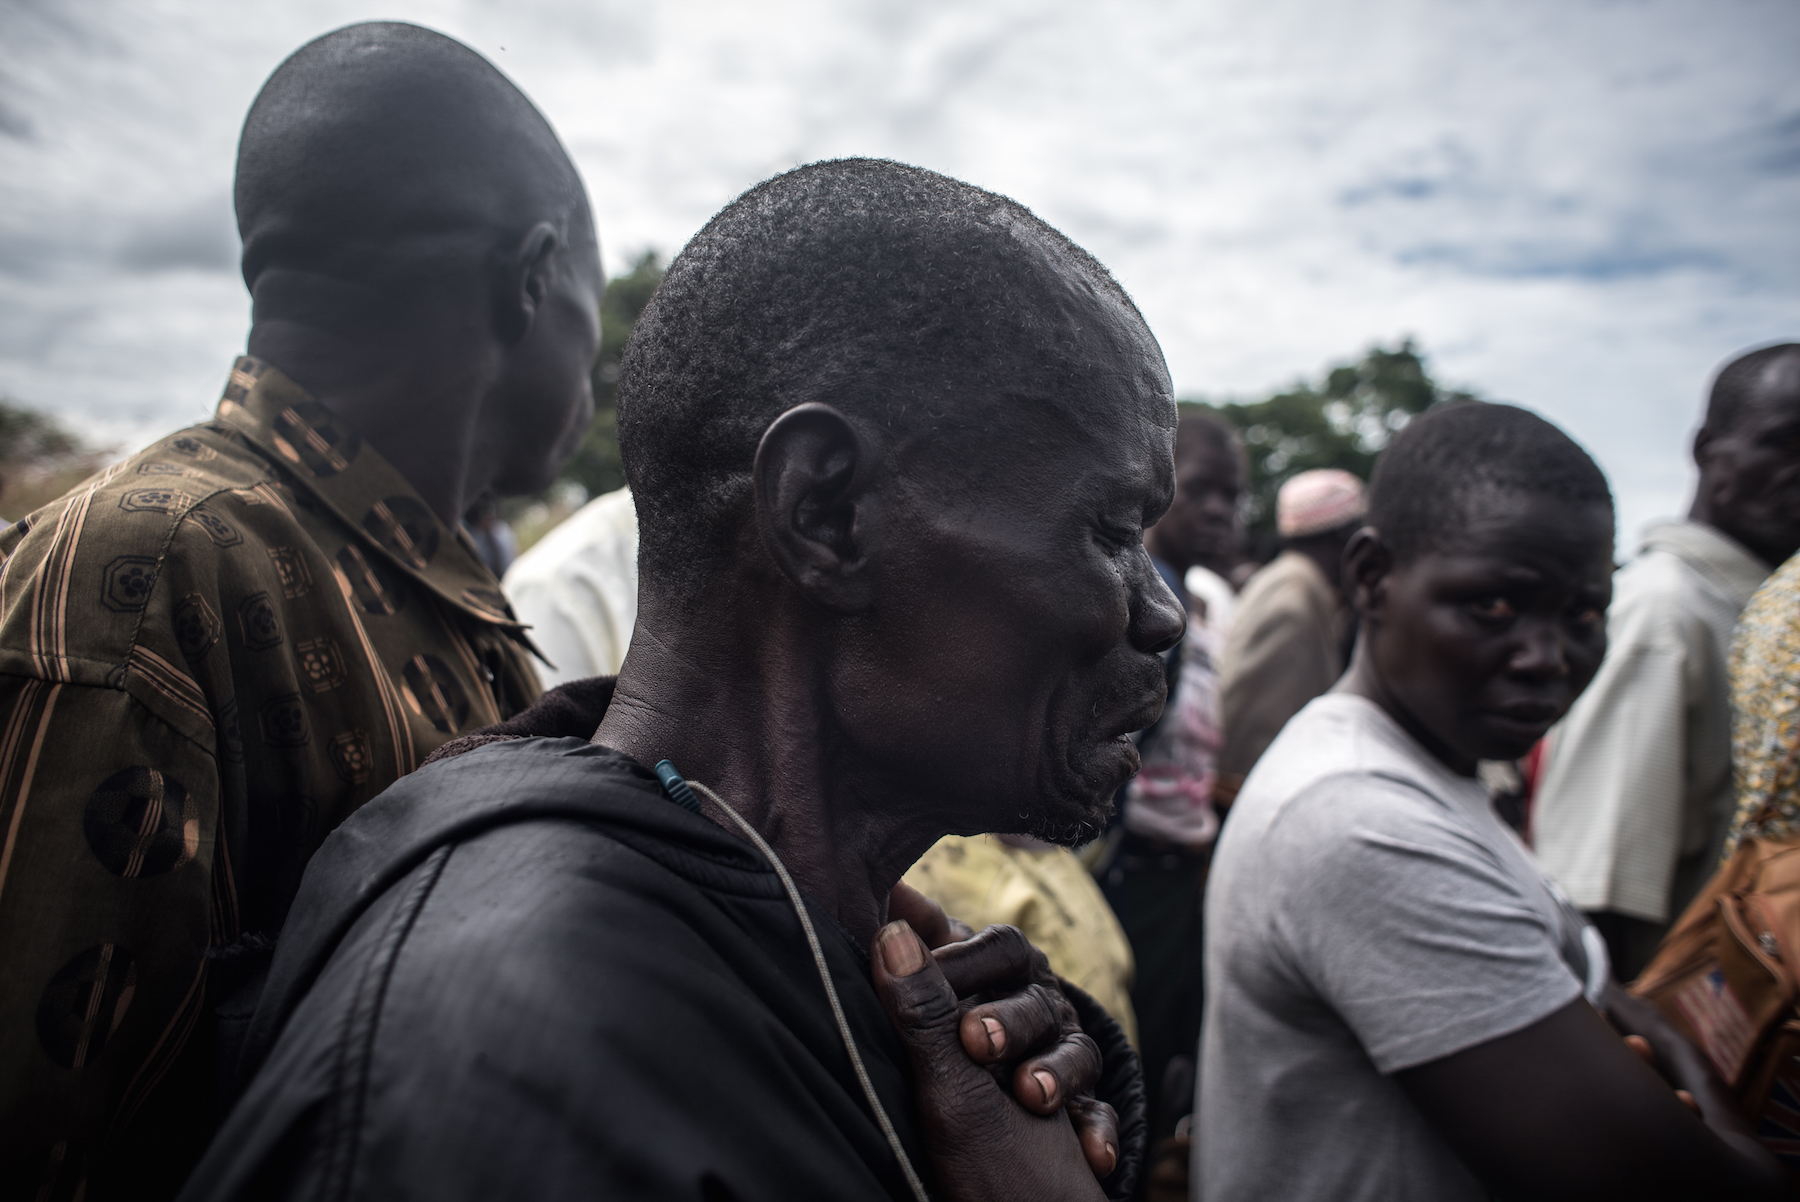 Moses Sokiri, whose son Duku Evans was killed November 3 amid fighting between government troops and rebels in Logo displaced persons camp in Kajo Keji, South Sudan, weeps at his son's funeral on the Ugandan border, Nov. 5, 2017.